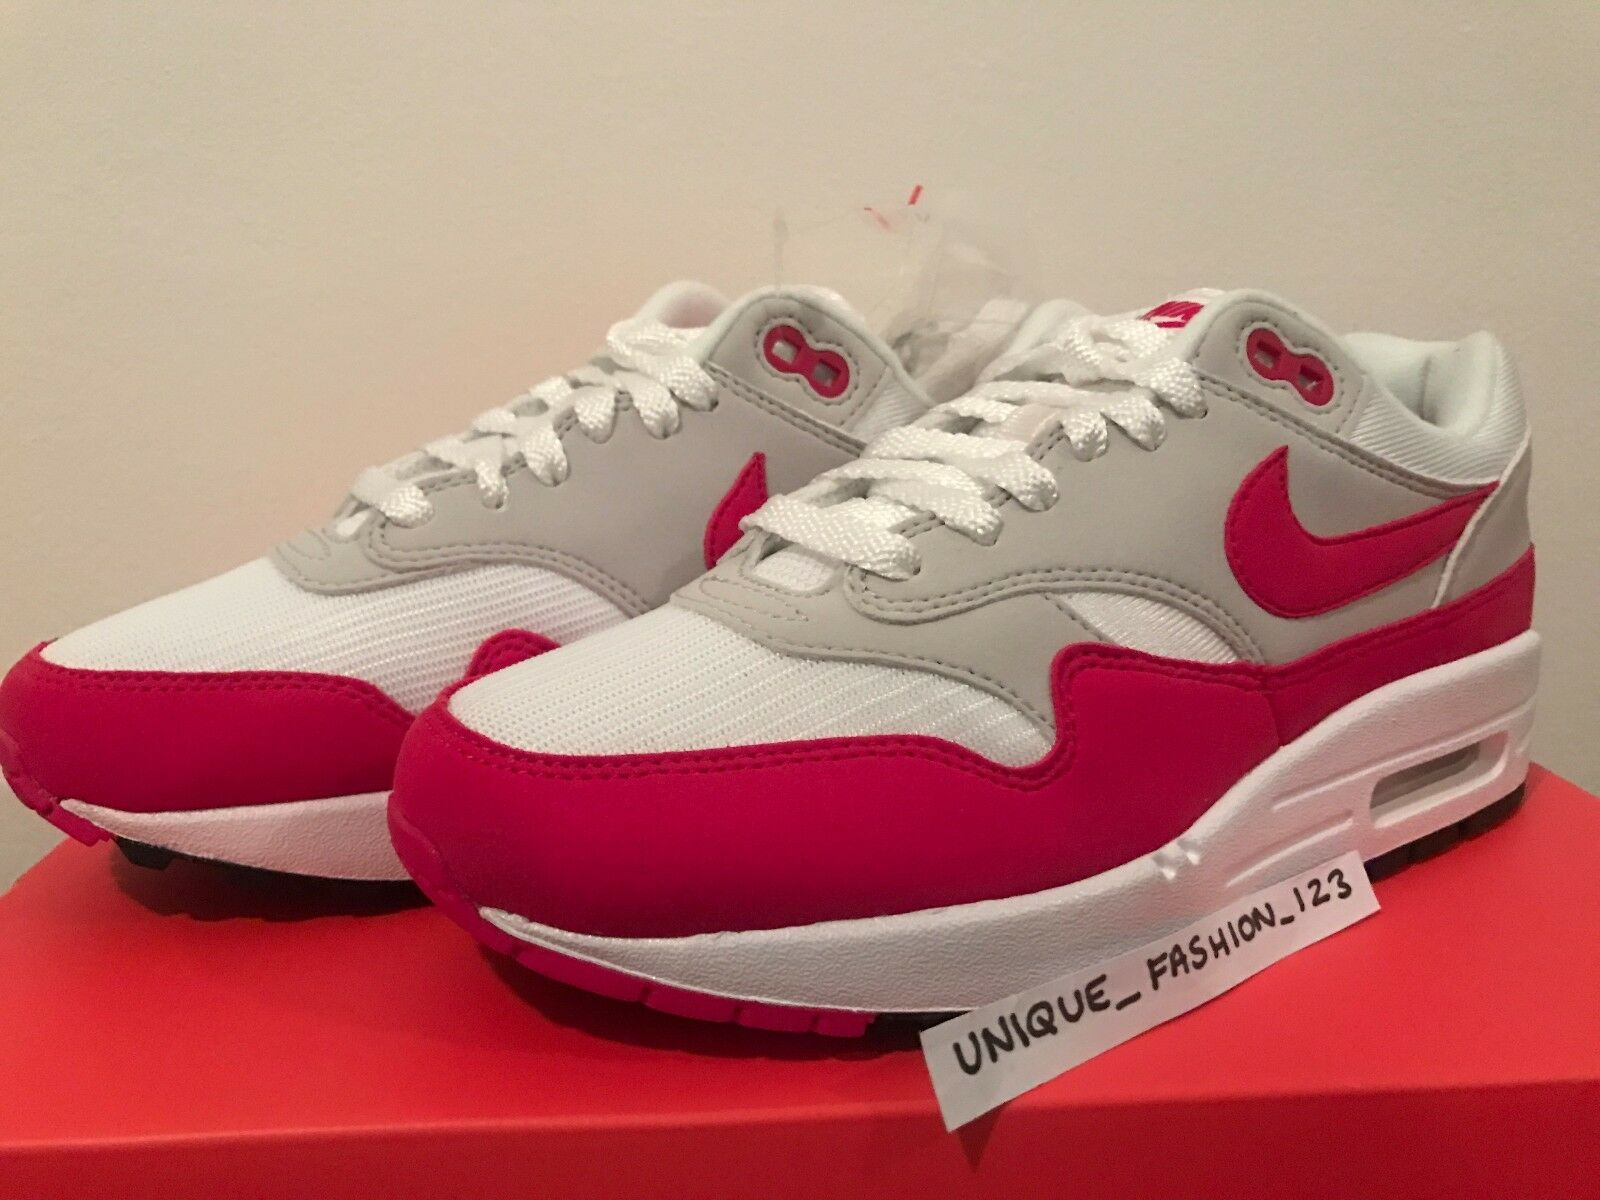 NIKE AIR MAX 1 30TH ANNIVERSARY OG RED WHITE GREY 2017 best-selling model of the brand